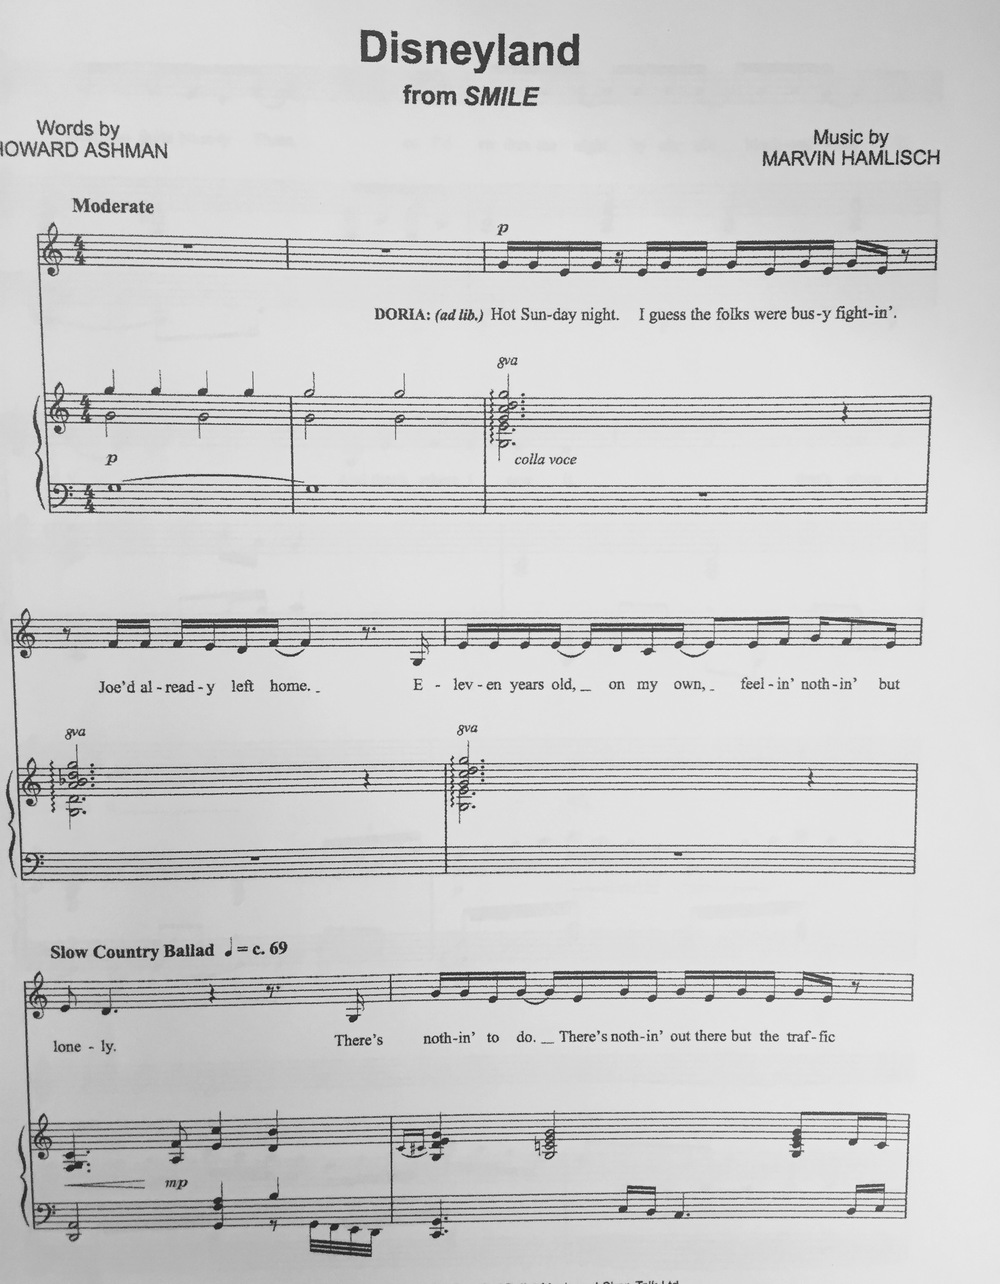 sheet music available at musicnote.com